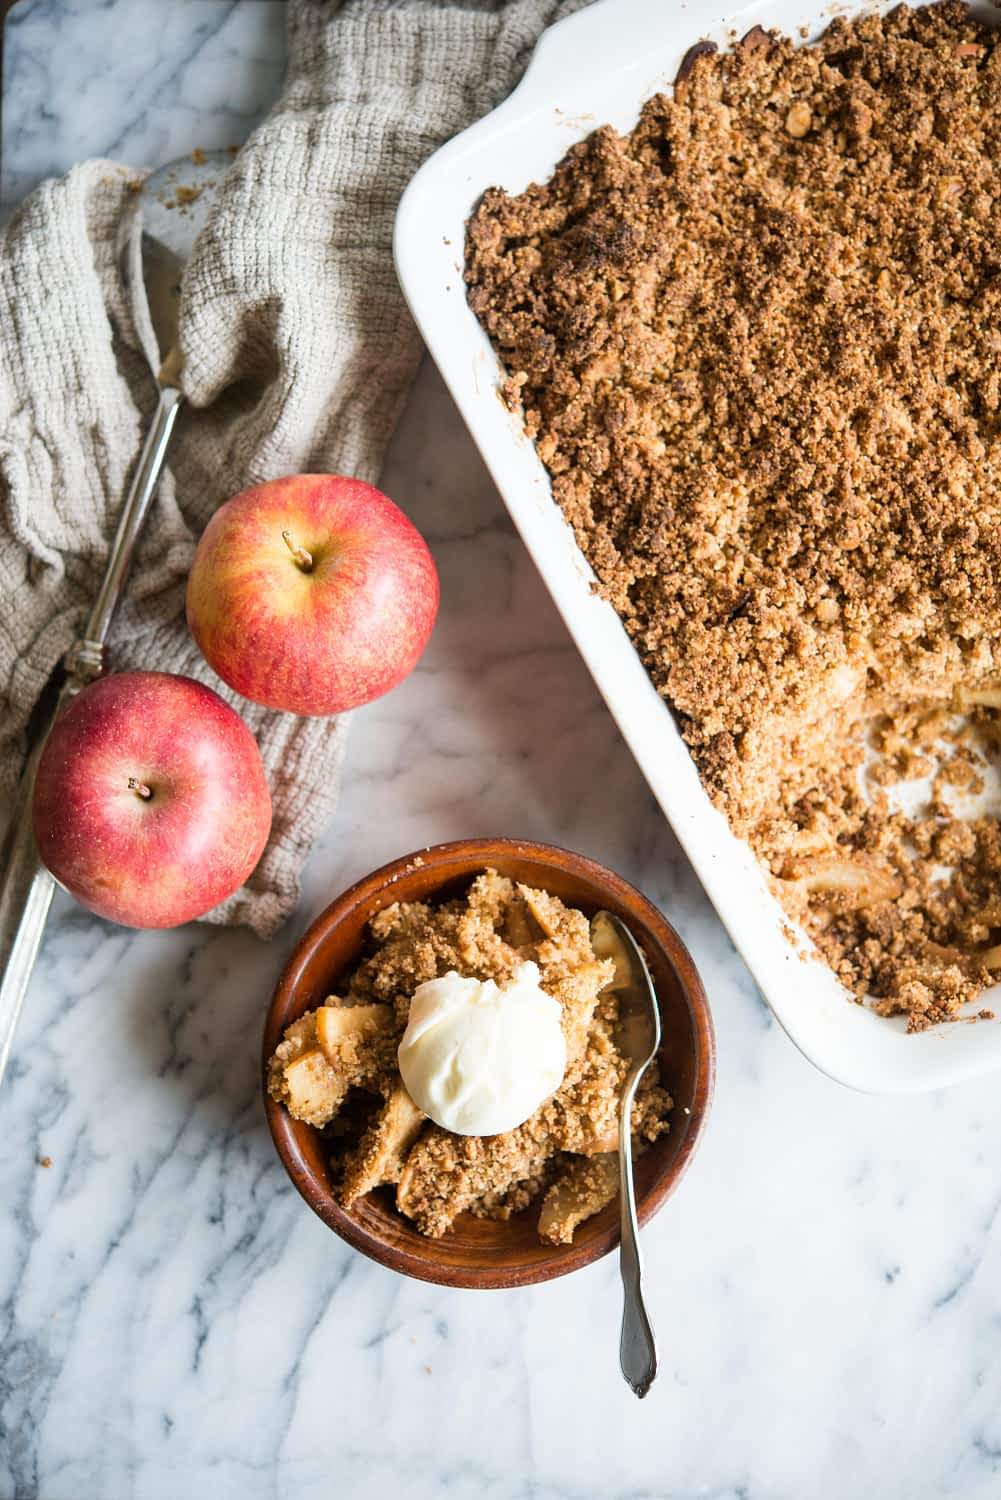 paleo apple crisp in a white rectangular dish with some spooned out into a wooden bowl and topped with a scoop of ice cream